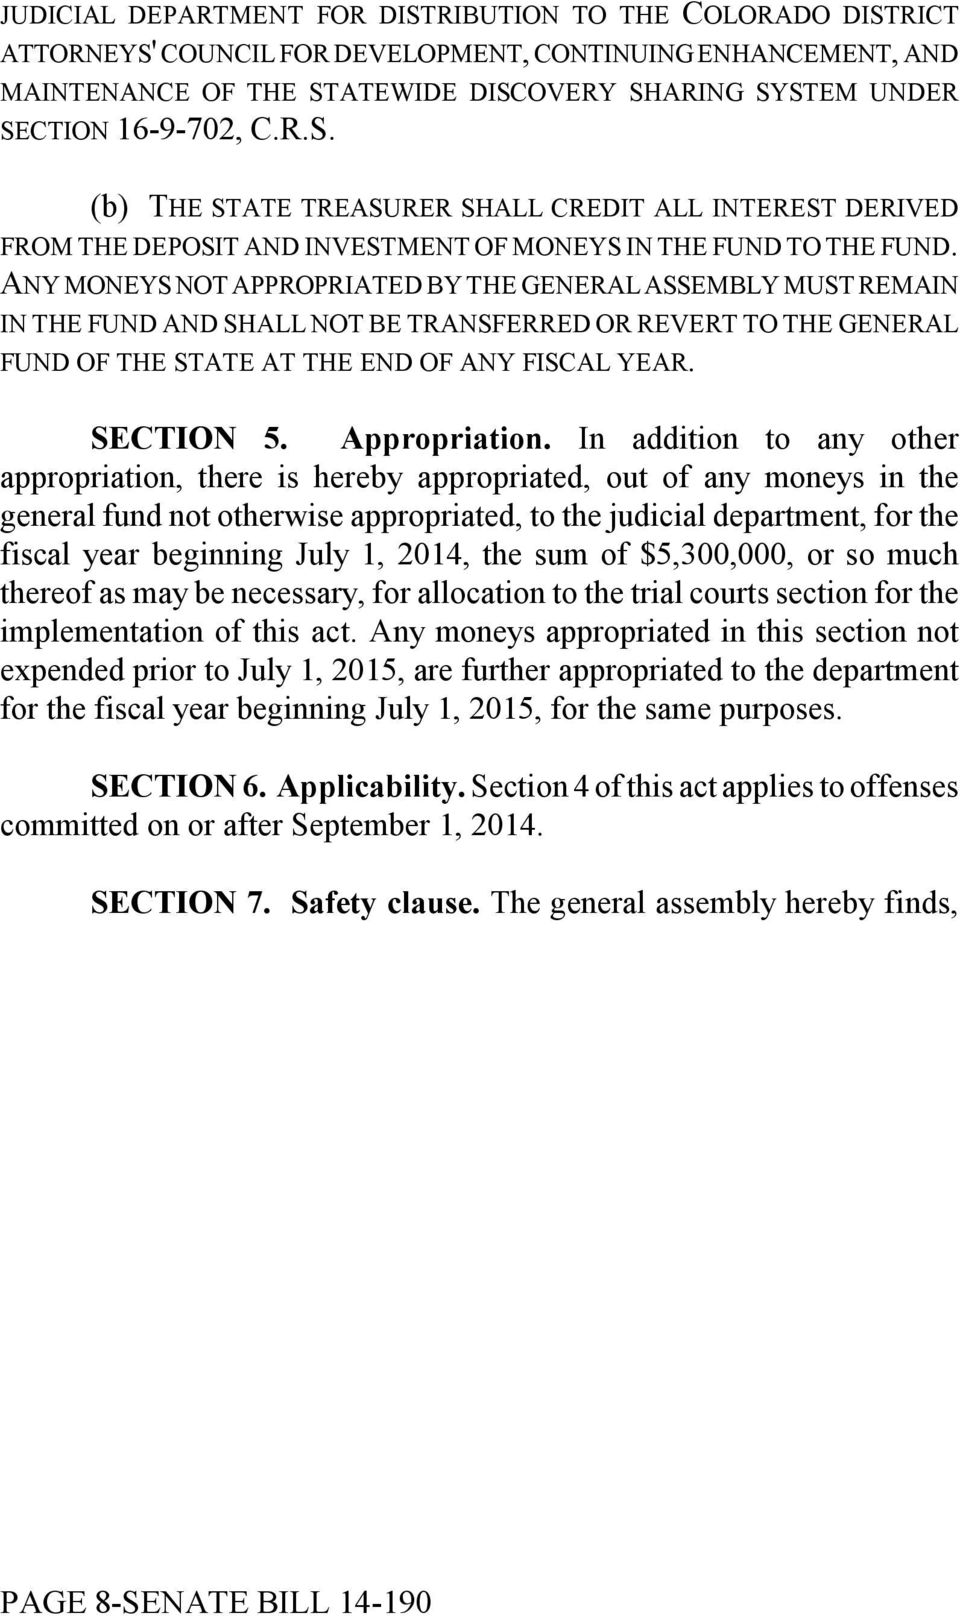 ANY MONEYS NOT APPROPRIATED BY THE GENERAL ASSEMBLY MUST REMAIN IN THE FUND AND SHALL NOT BE TRANSFERRED OR REVERT TO THE GENERAL FUND OF THE STATE AT THE END OF ANY FISCAL YEAR. SECTION 5.